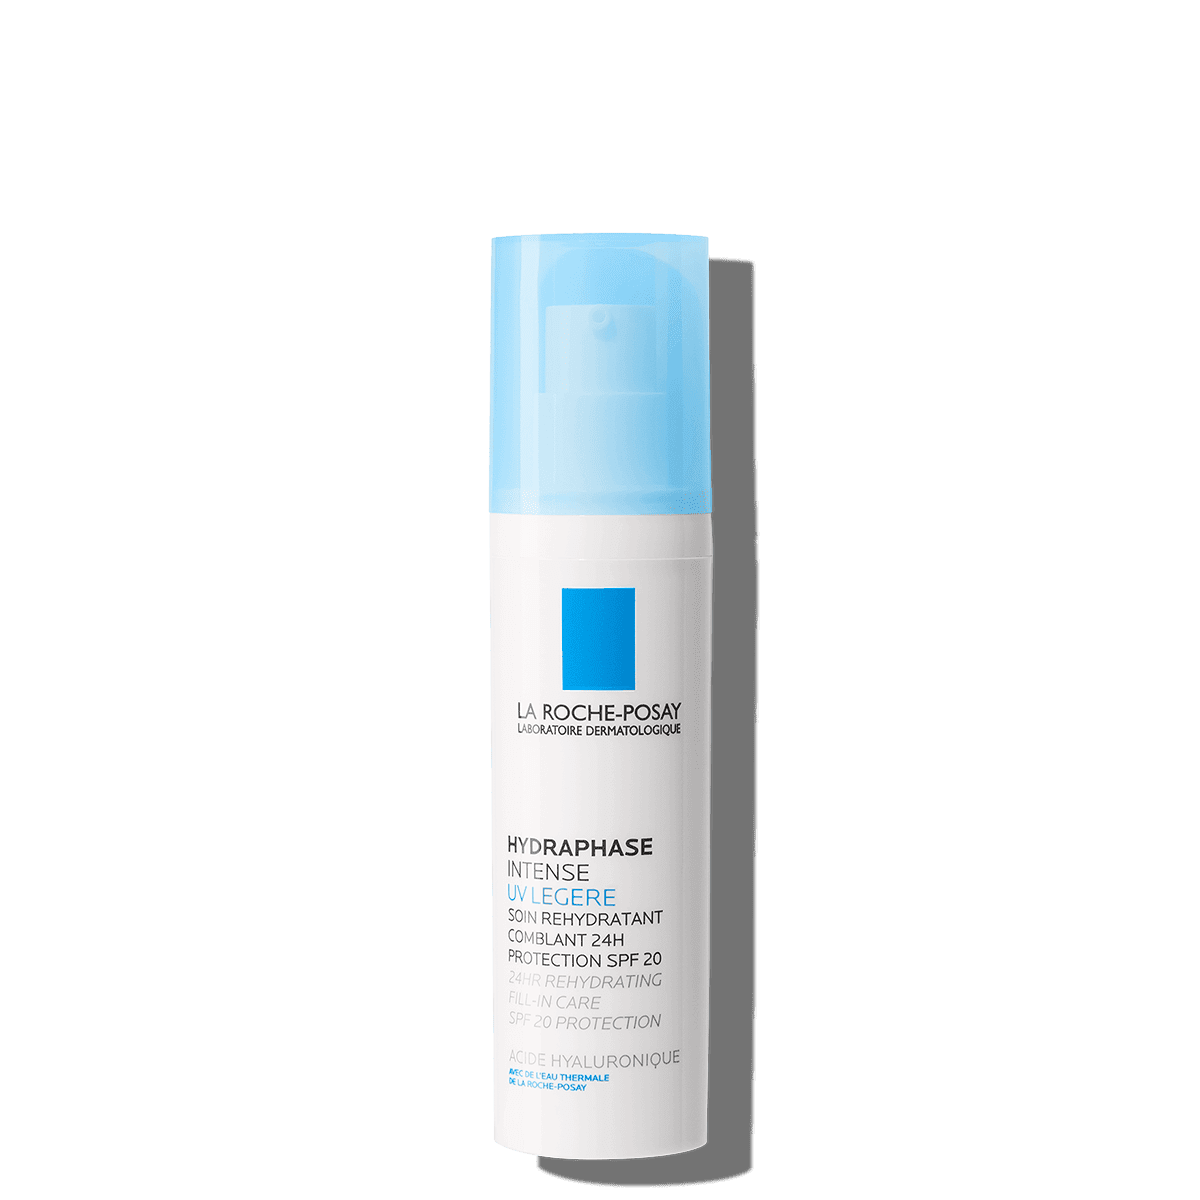 La Roche Posay ProductPage Hydraphase UV Intense Light Spf20 50ml 3337